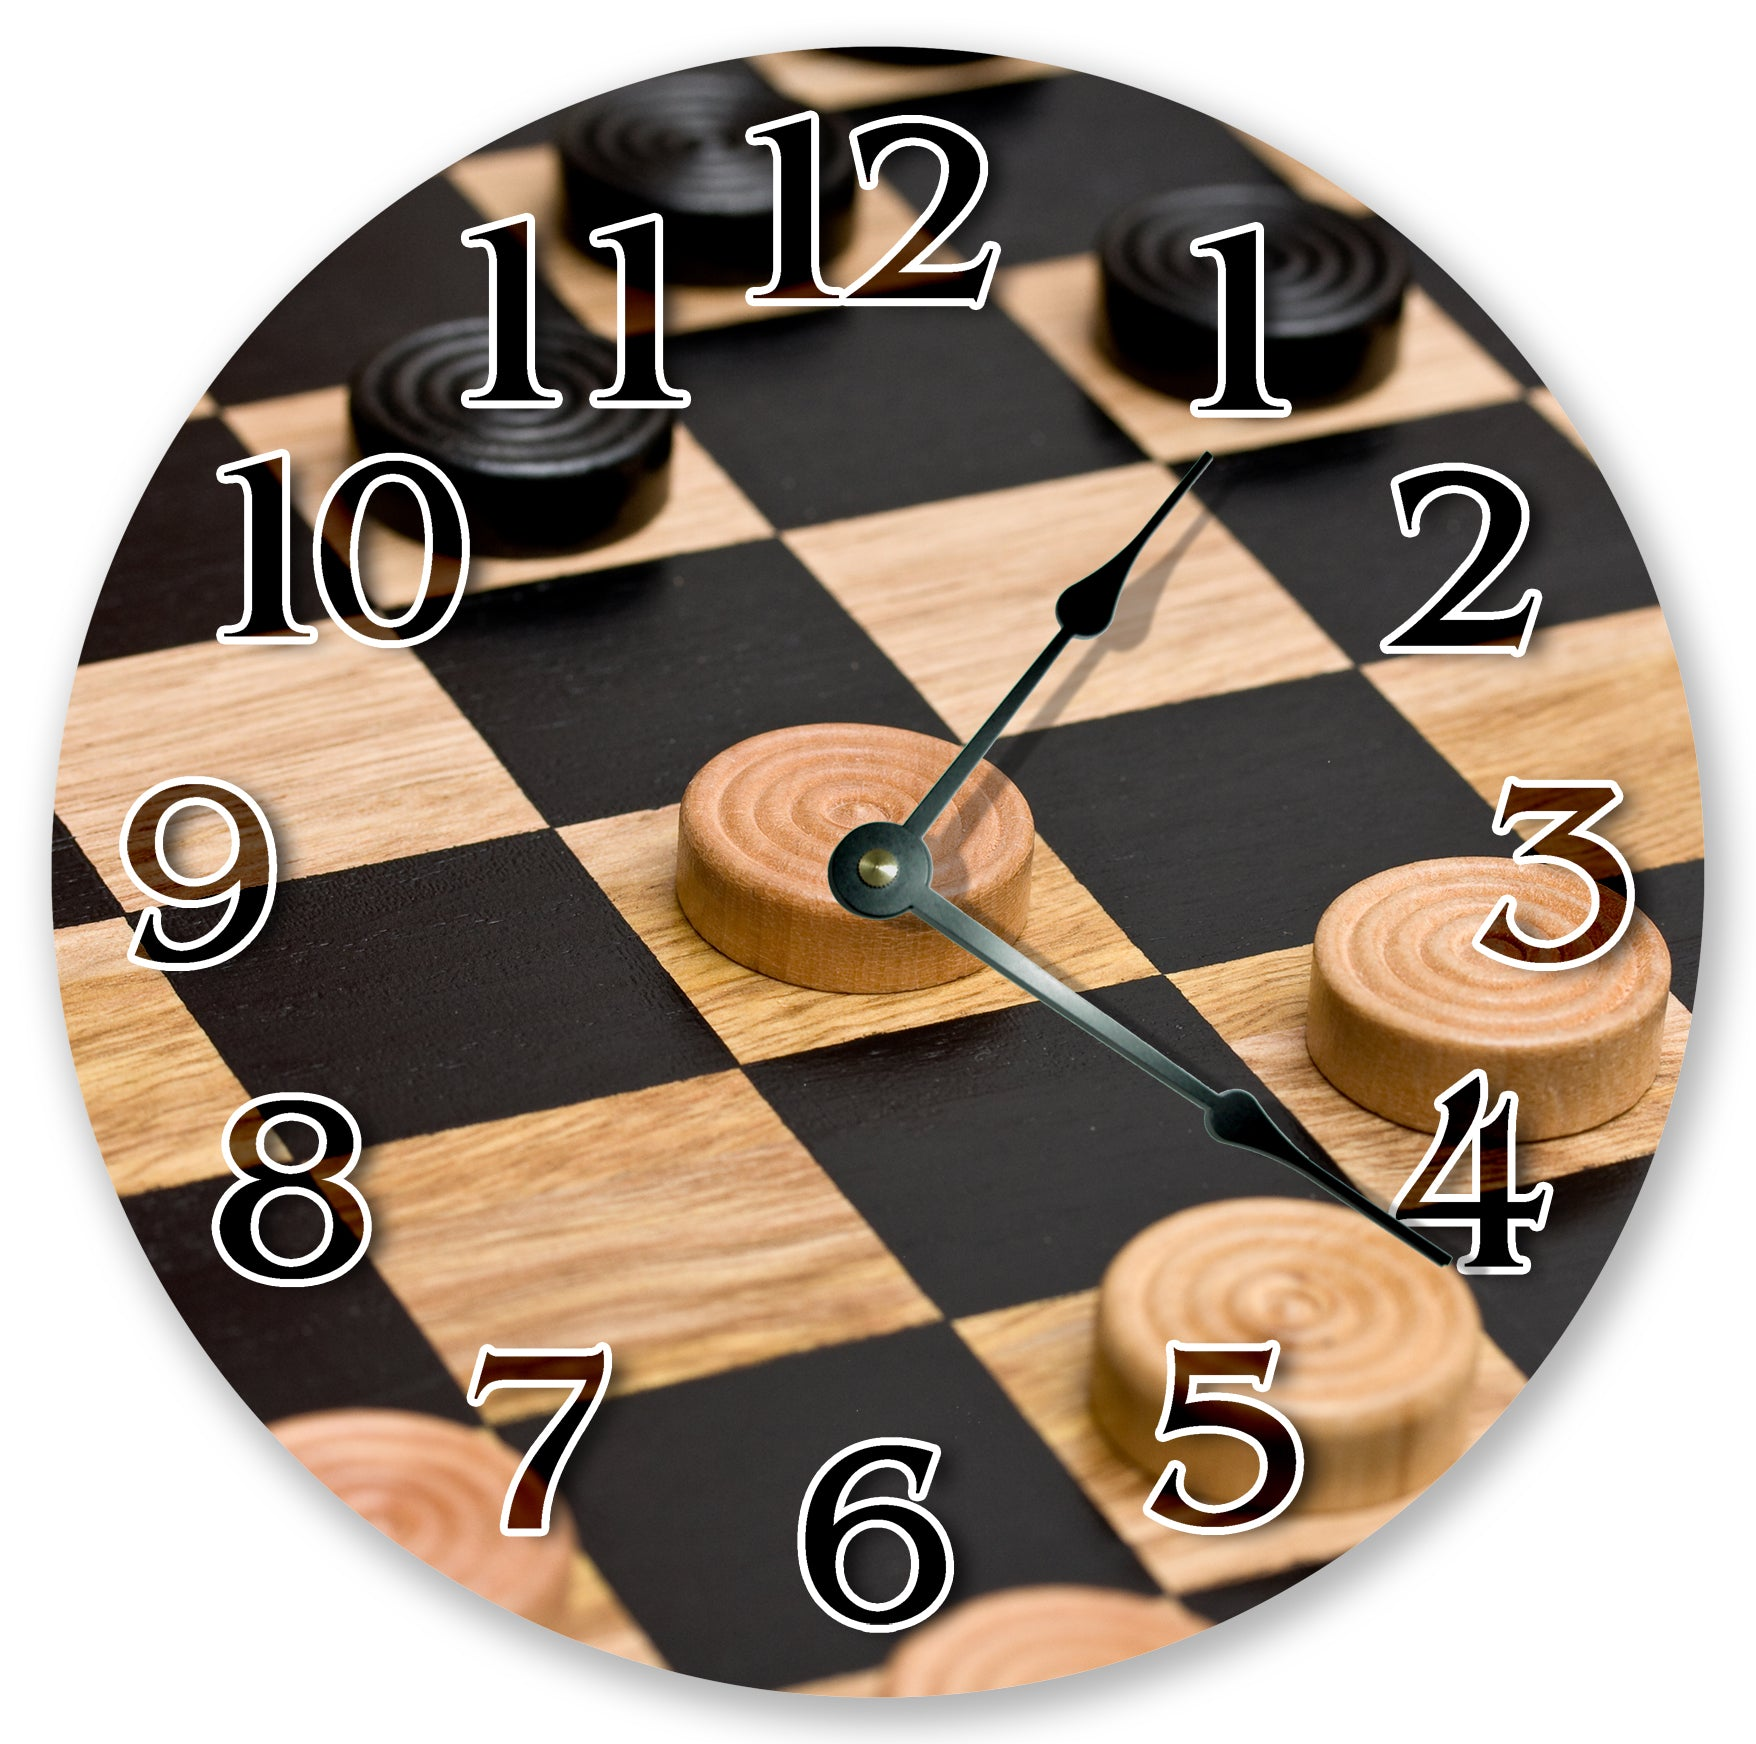 Checkers Game Board Home Decor Hanging Wall Clock